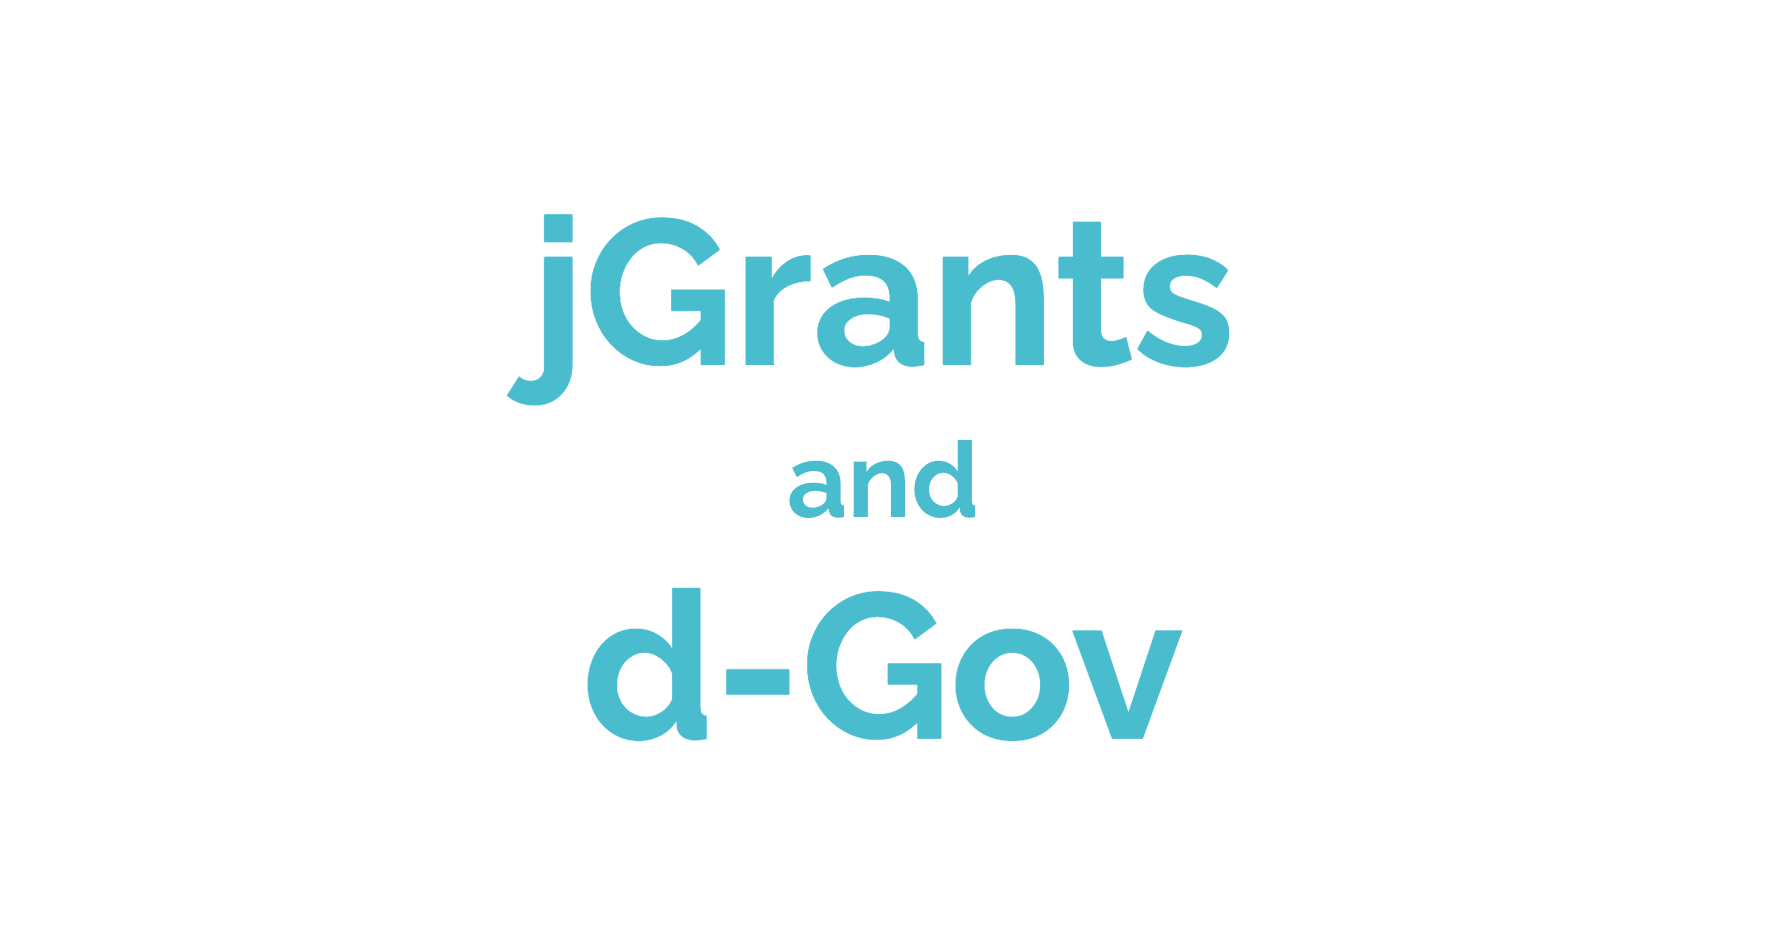 Text: jGrants and d-Gov